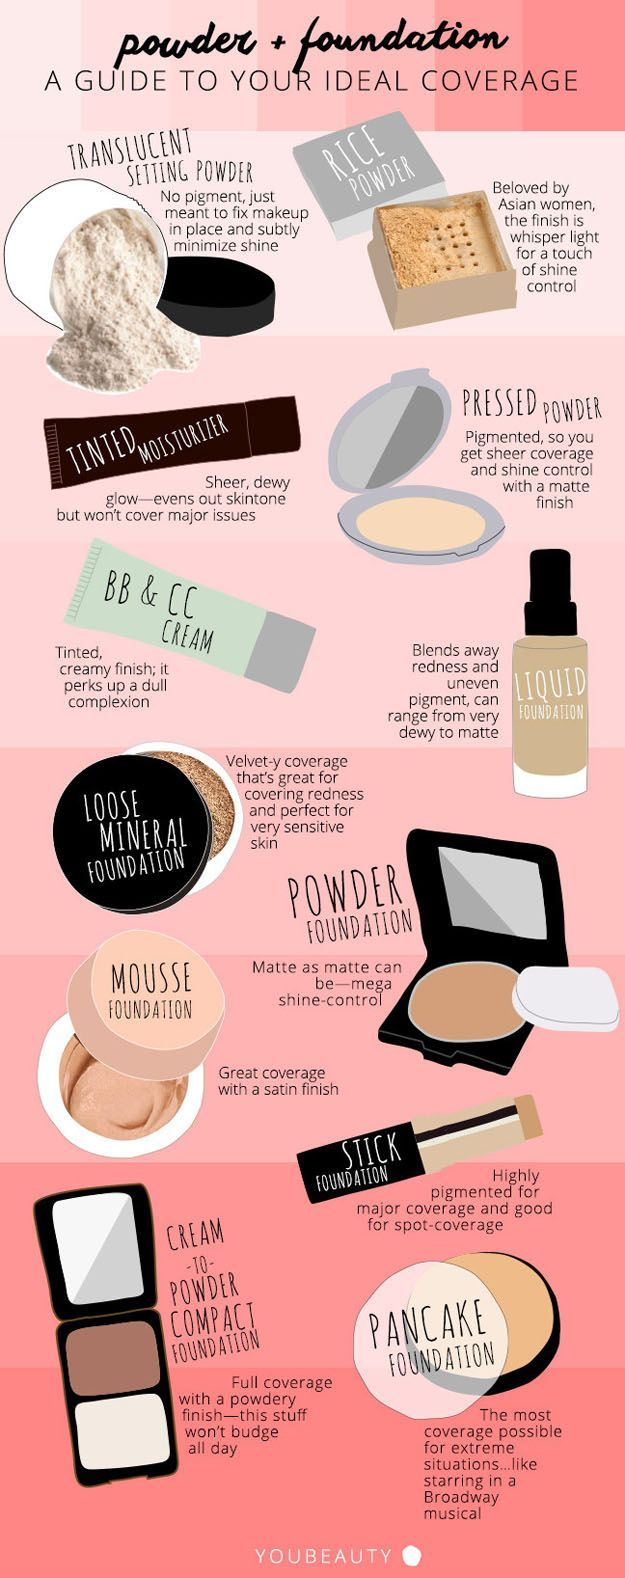 Guide to the Best Coverage for You | Makeup Tutorial for a Flawless Finish by Makeup Tutorials at http://makeuptutorials.com/makeup-tutorials-beauty-tips